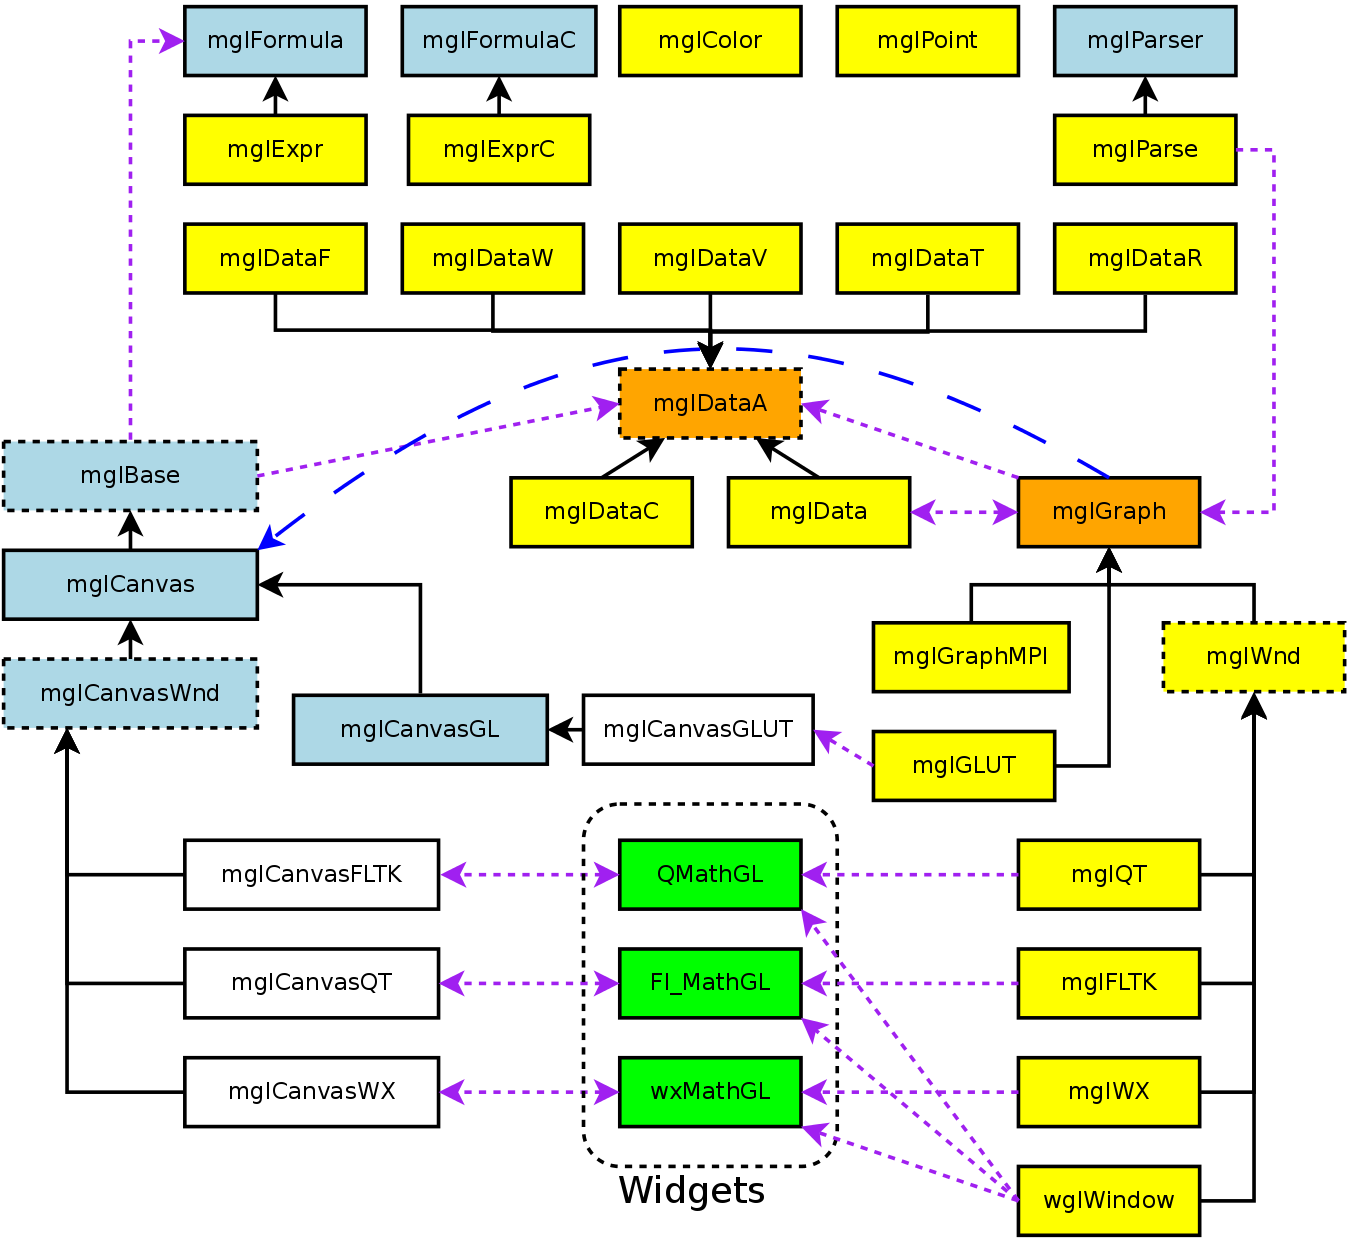 Class diagram for MathGL